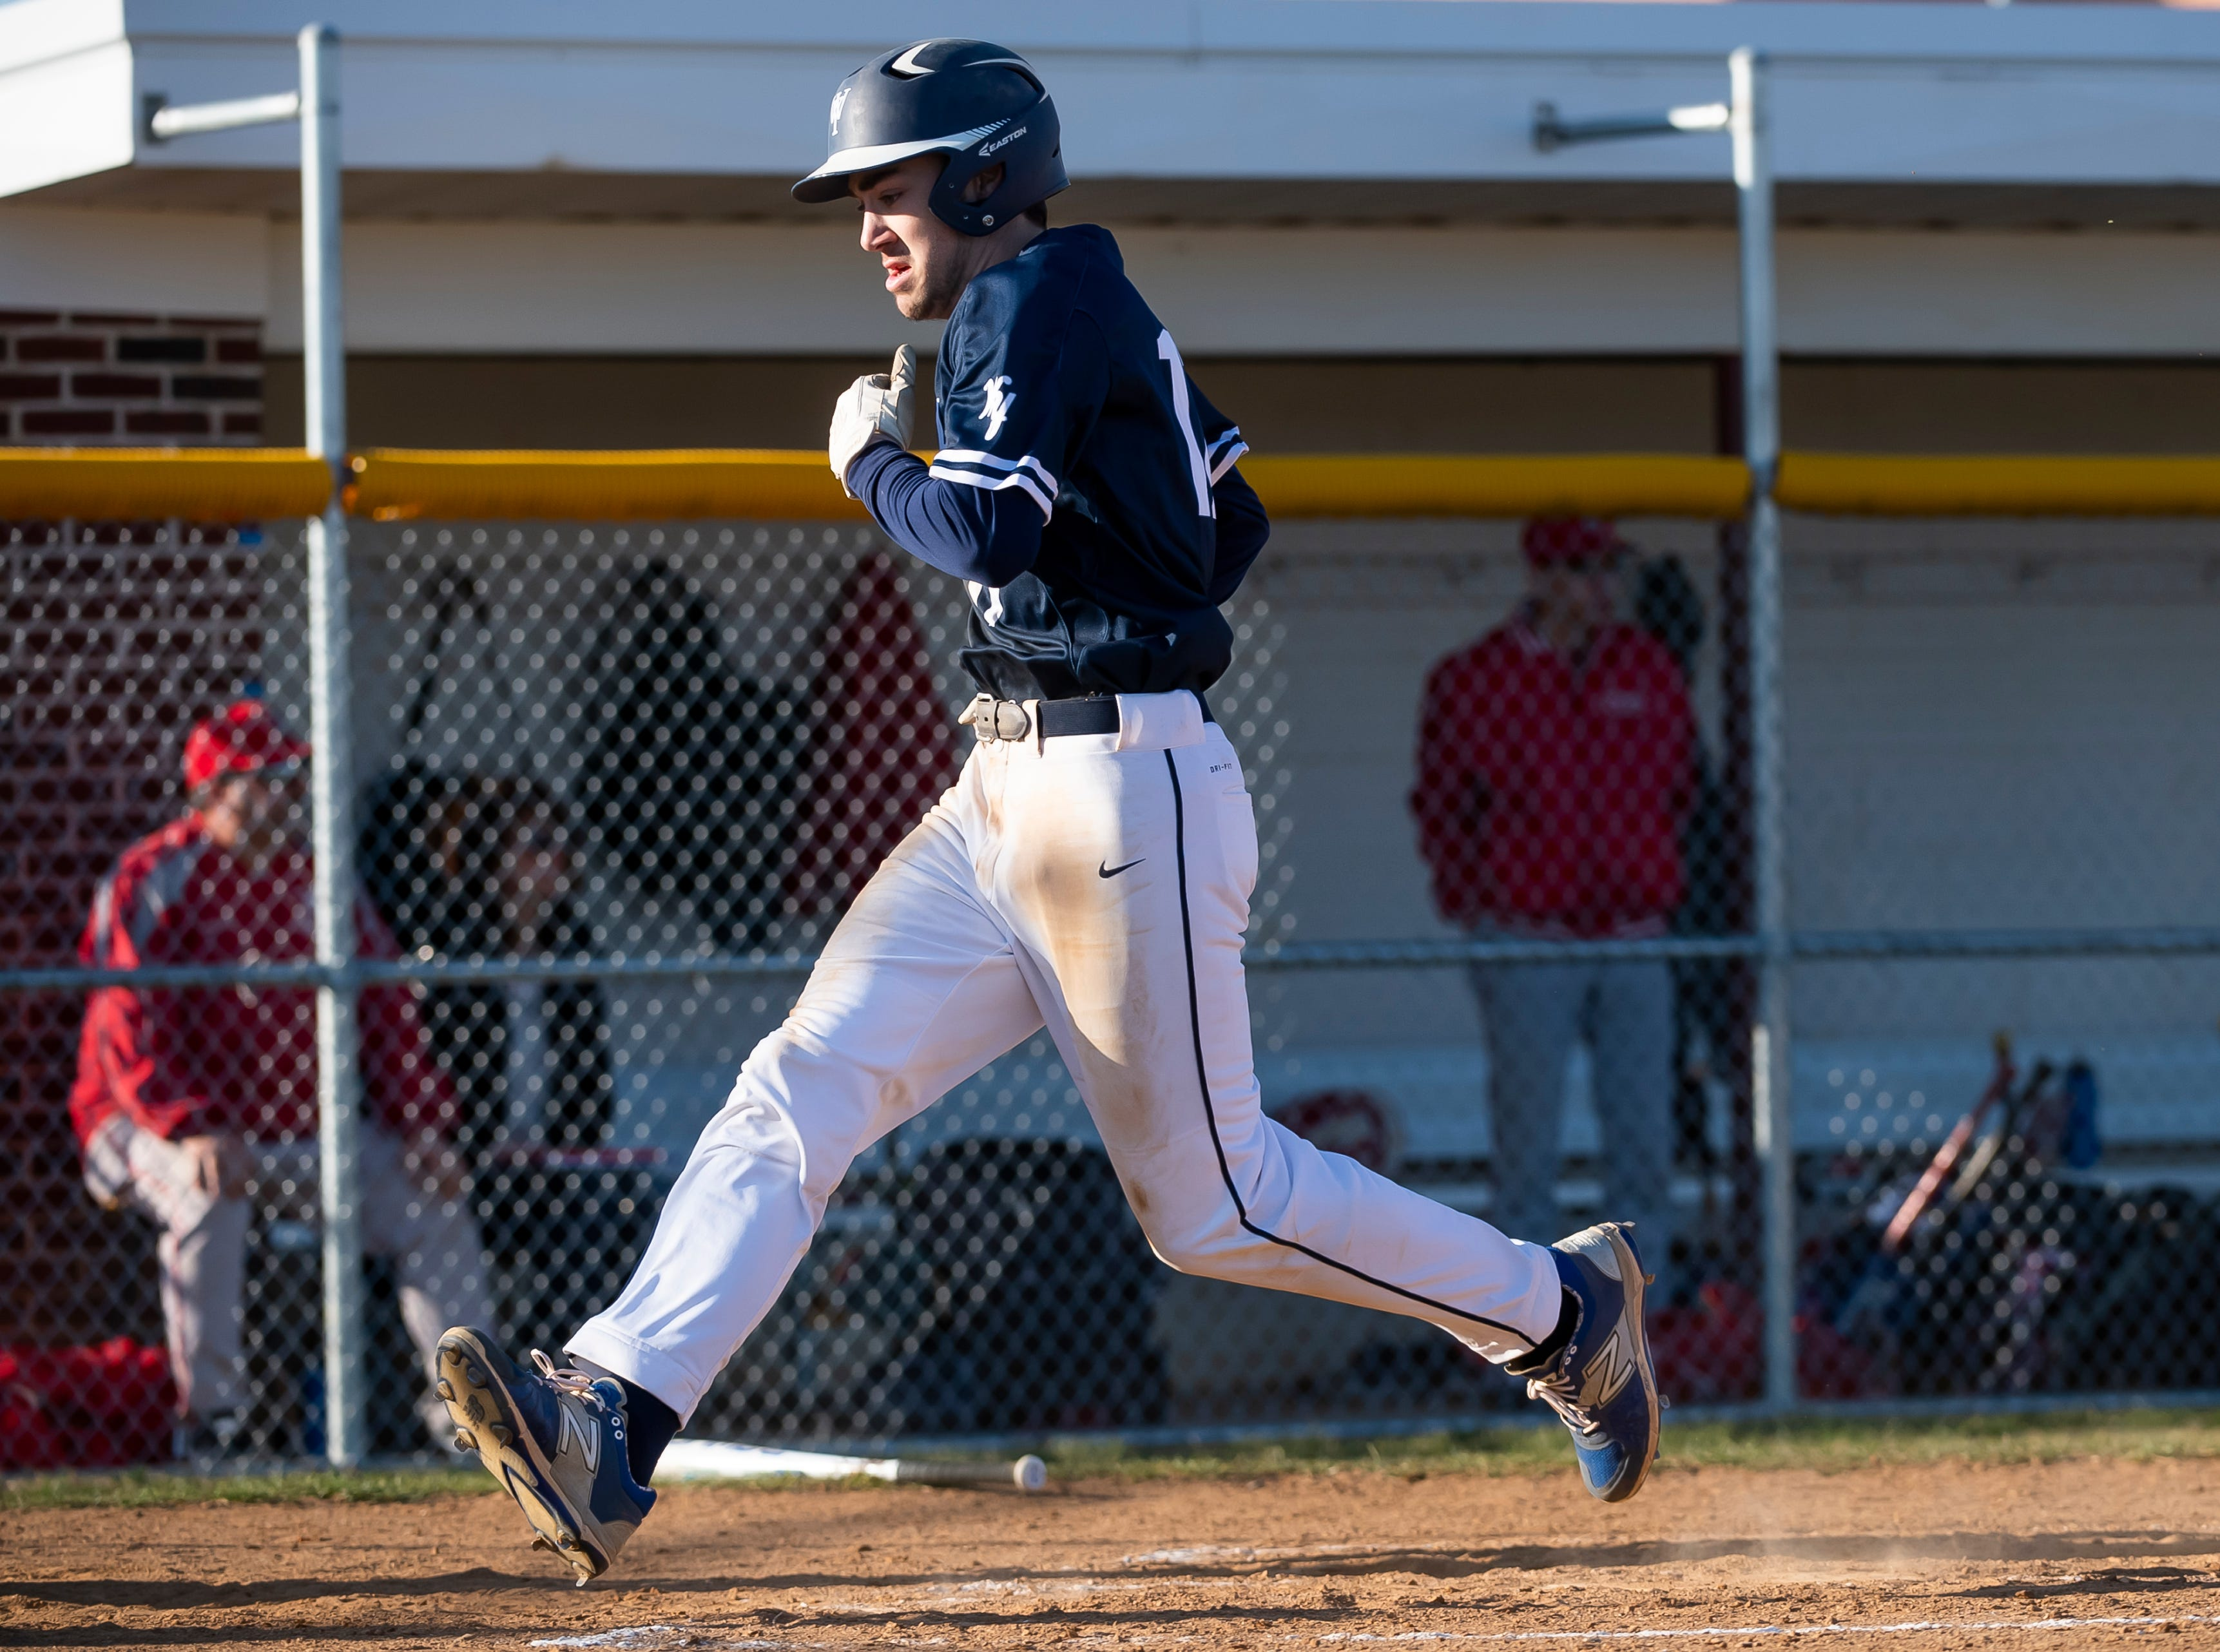 West York's Jeff Minot dashes across home plate to score a run during a YAIAA baseball game against Bermudian Springs on Wednesday, April 3, 2019. The Bulldogs won 14-11.